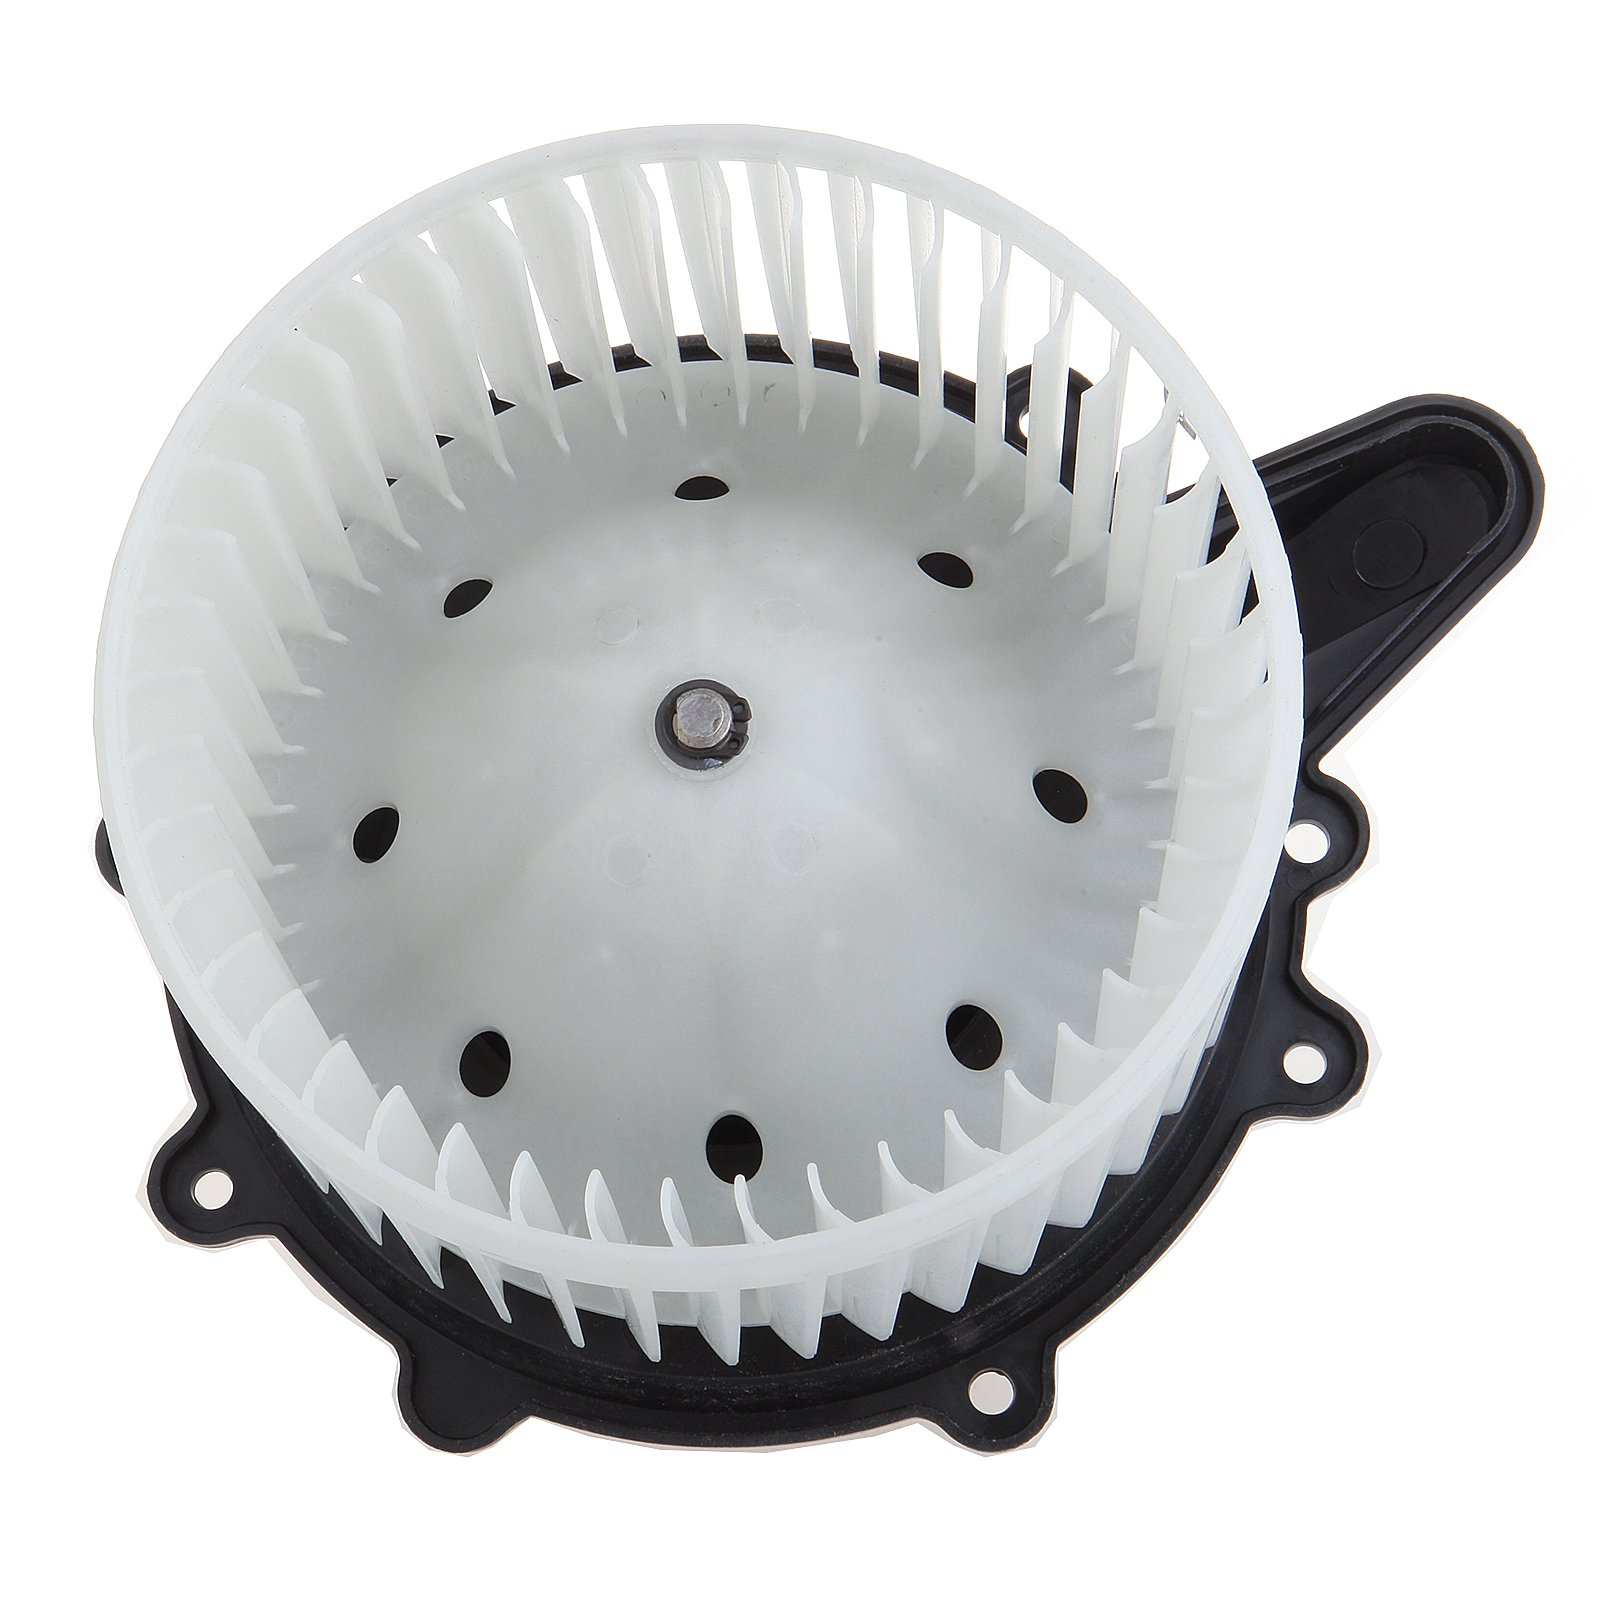 HVAC Motors Replacement ABS plastic Heater Blower Motor w/ Fan Cage ECCPP Heater Fan Control Engine Cooling & Climate Control Front for 1997-2002 Ford Expedition /2002-2005 Ford Explorer